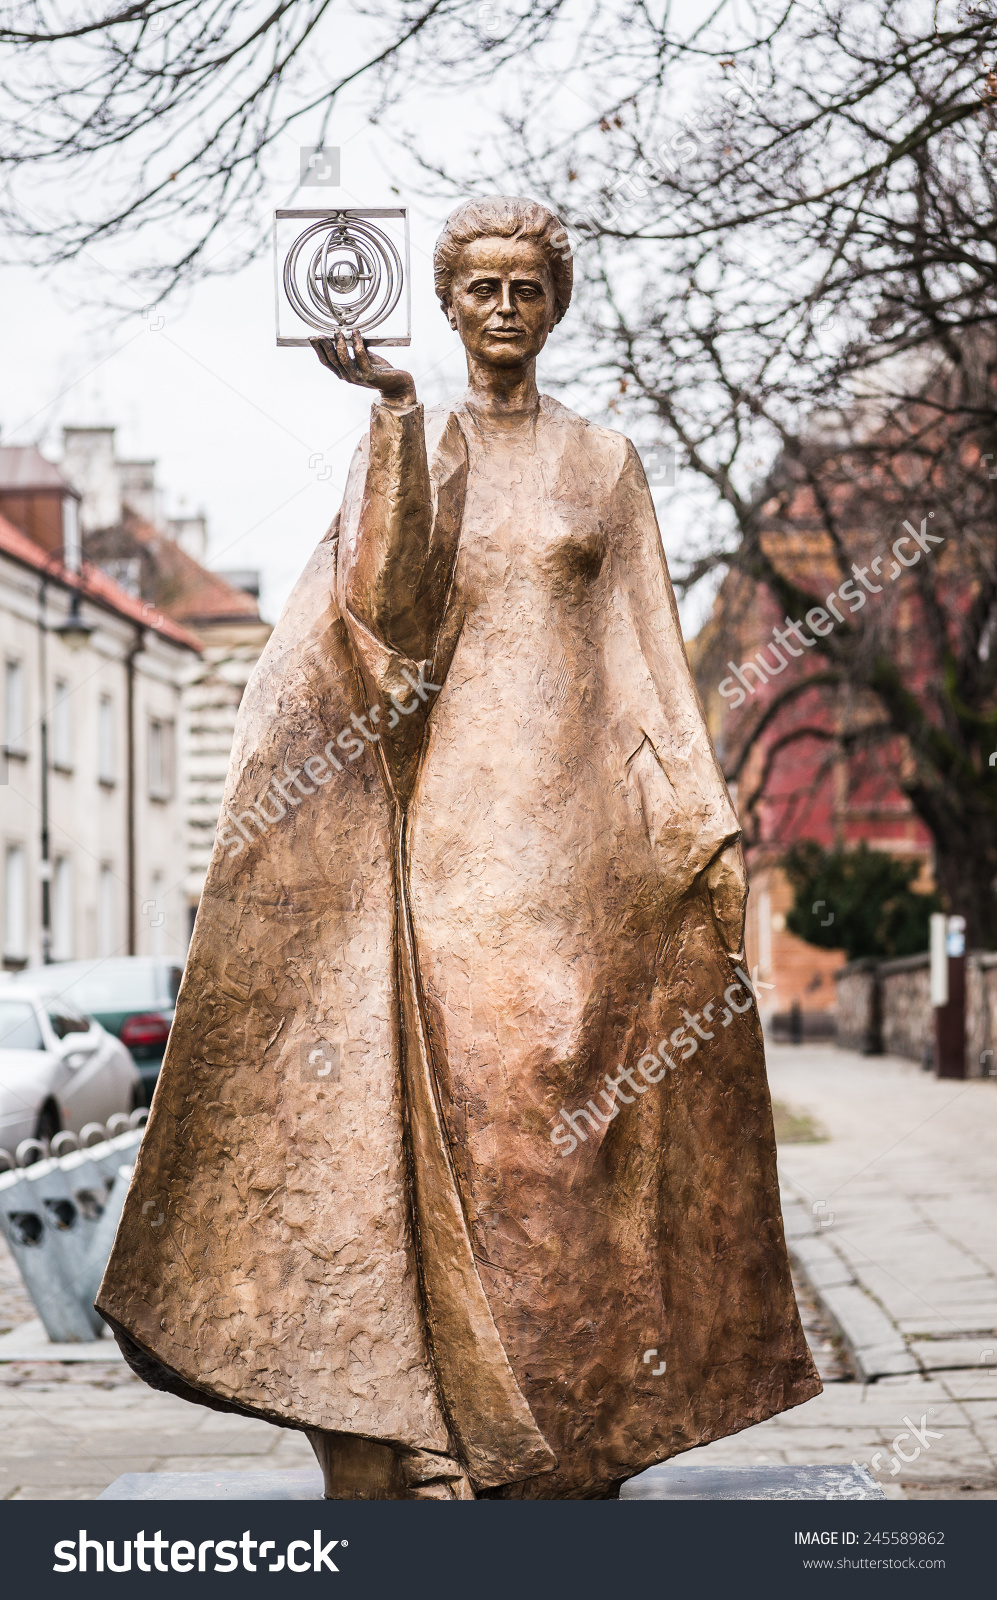 Warsaw Poland January 2 2014 Sculpture Stock Photo 245589862.